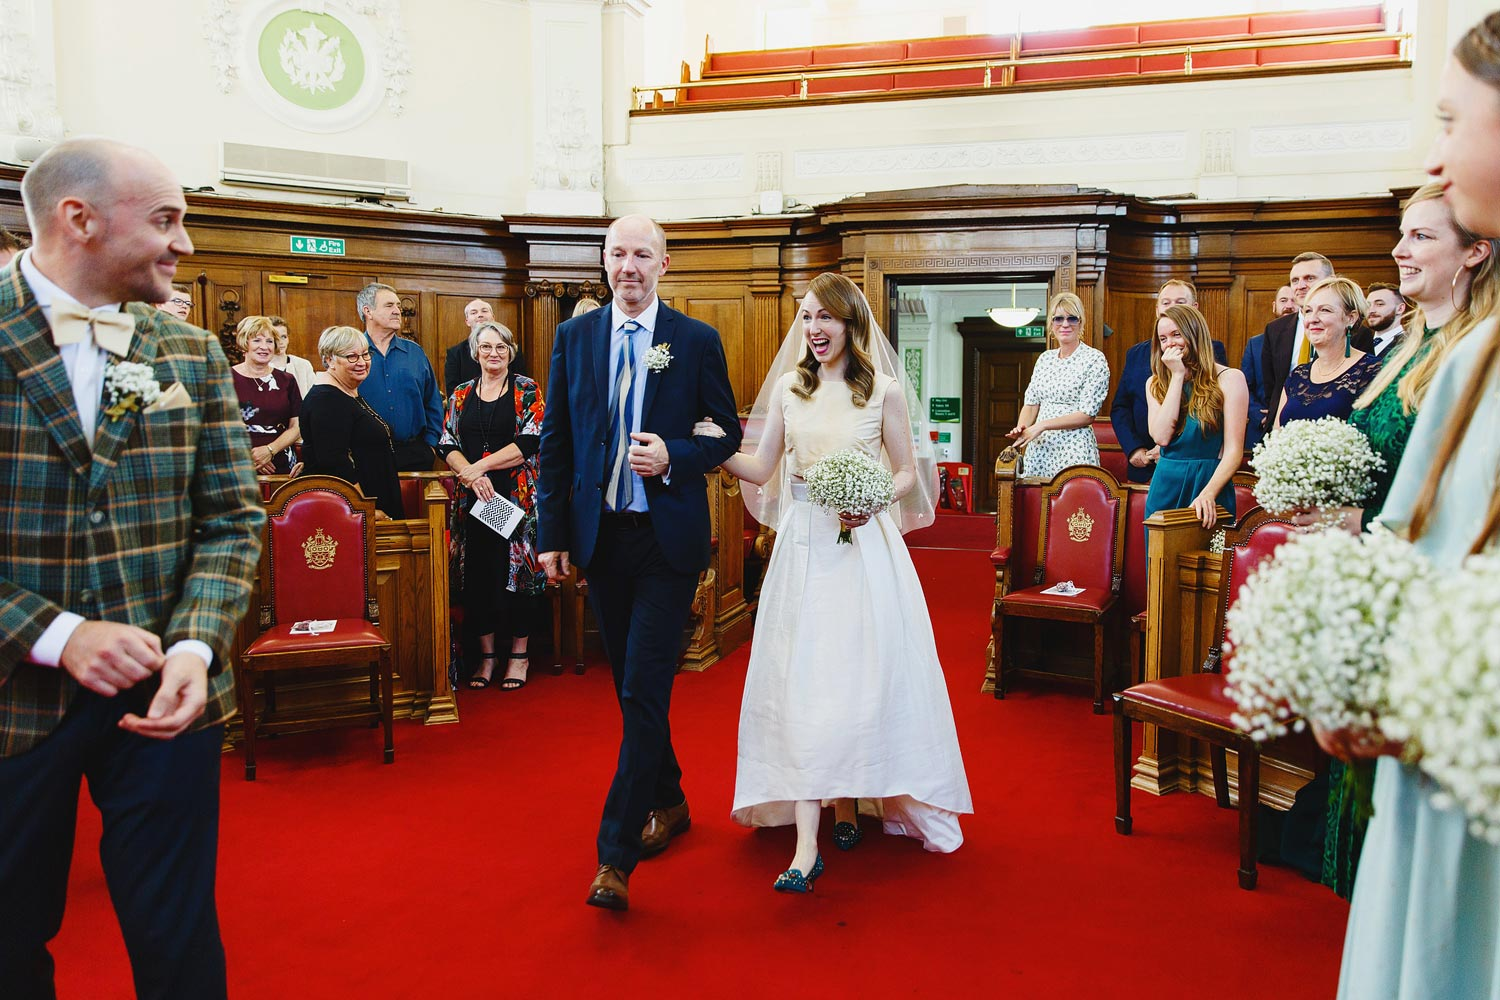 A bride and her father walk down the aisle at her Islington Town Hall wedding